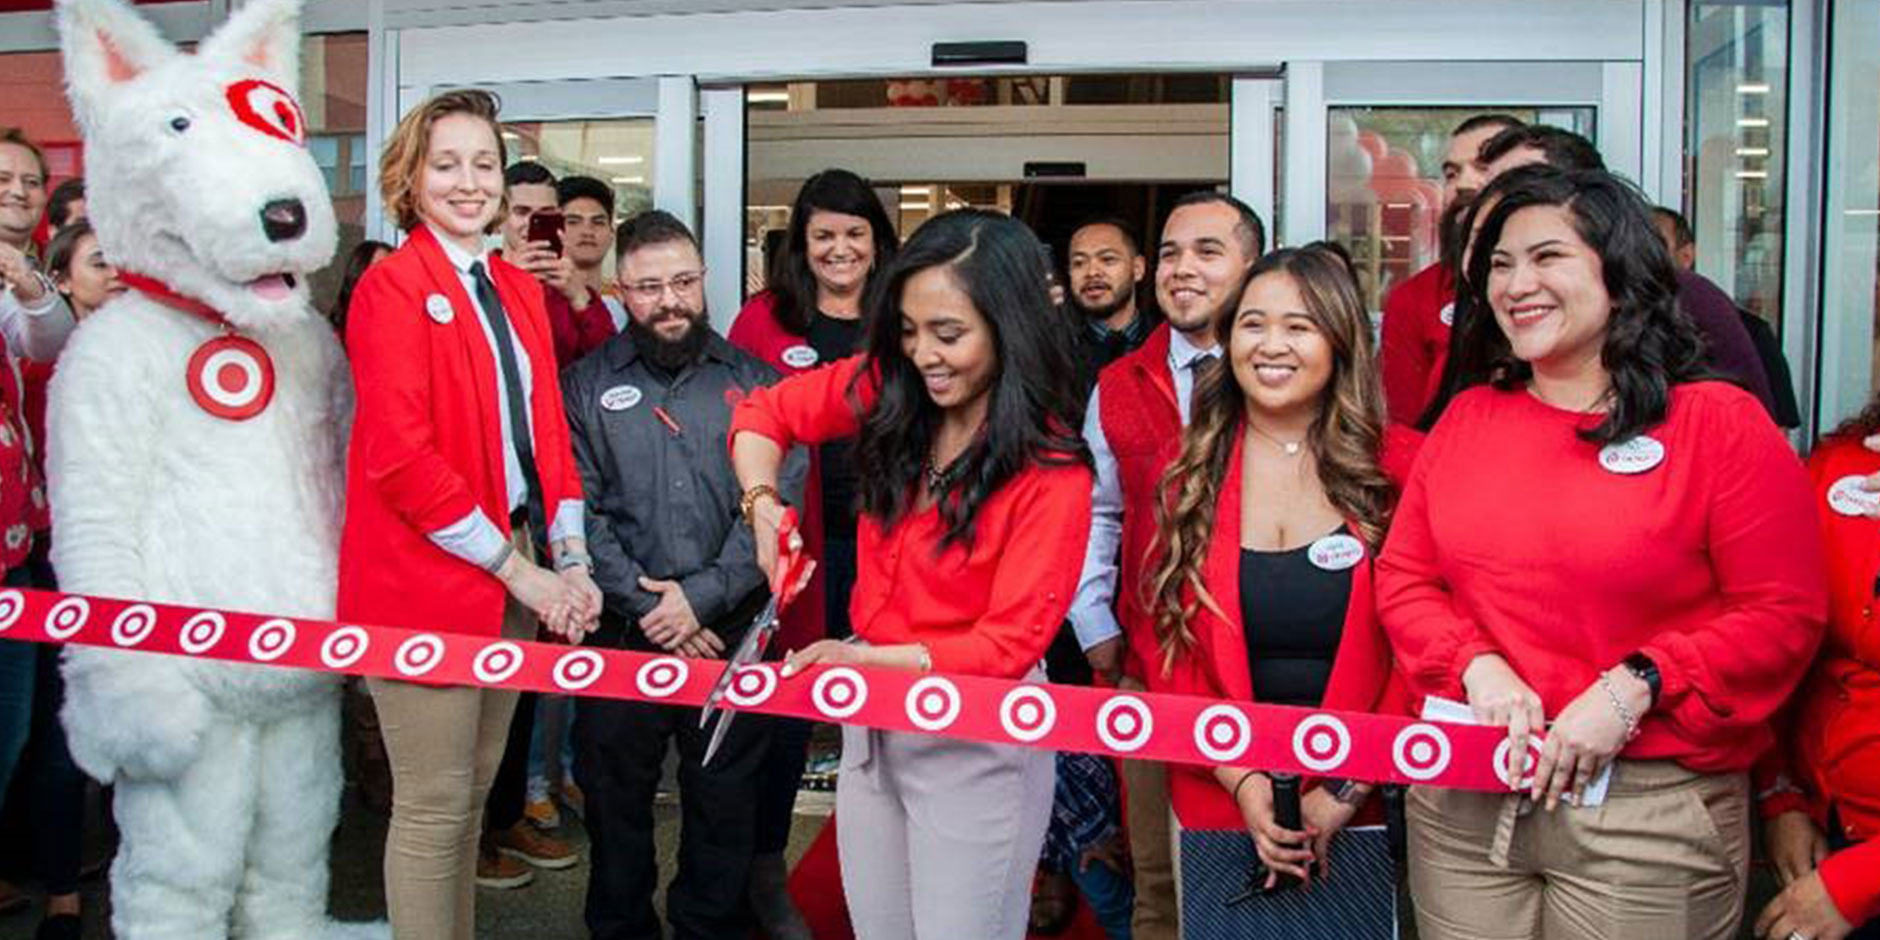 group of Team Members outside a new store while a female cuts a red ribbon with large scissors